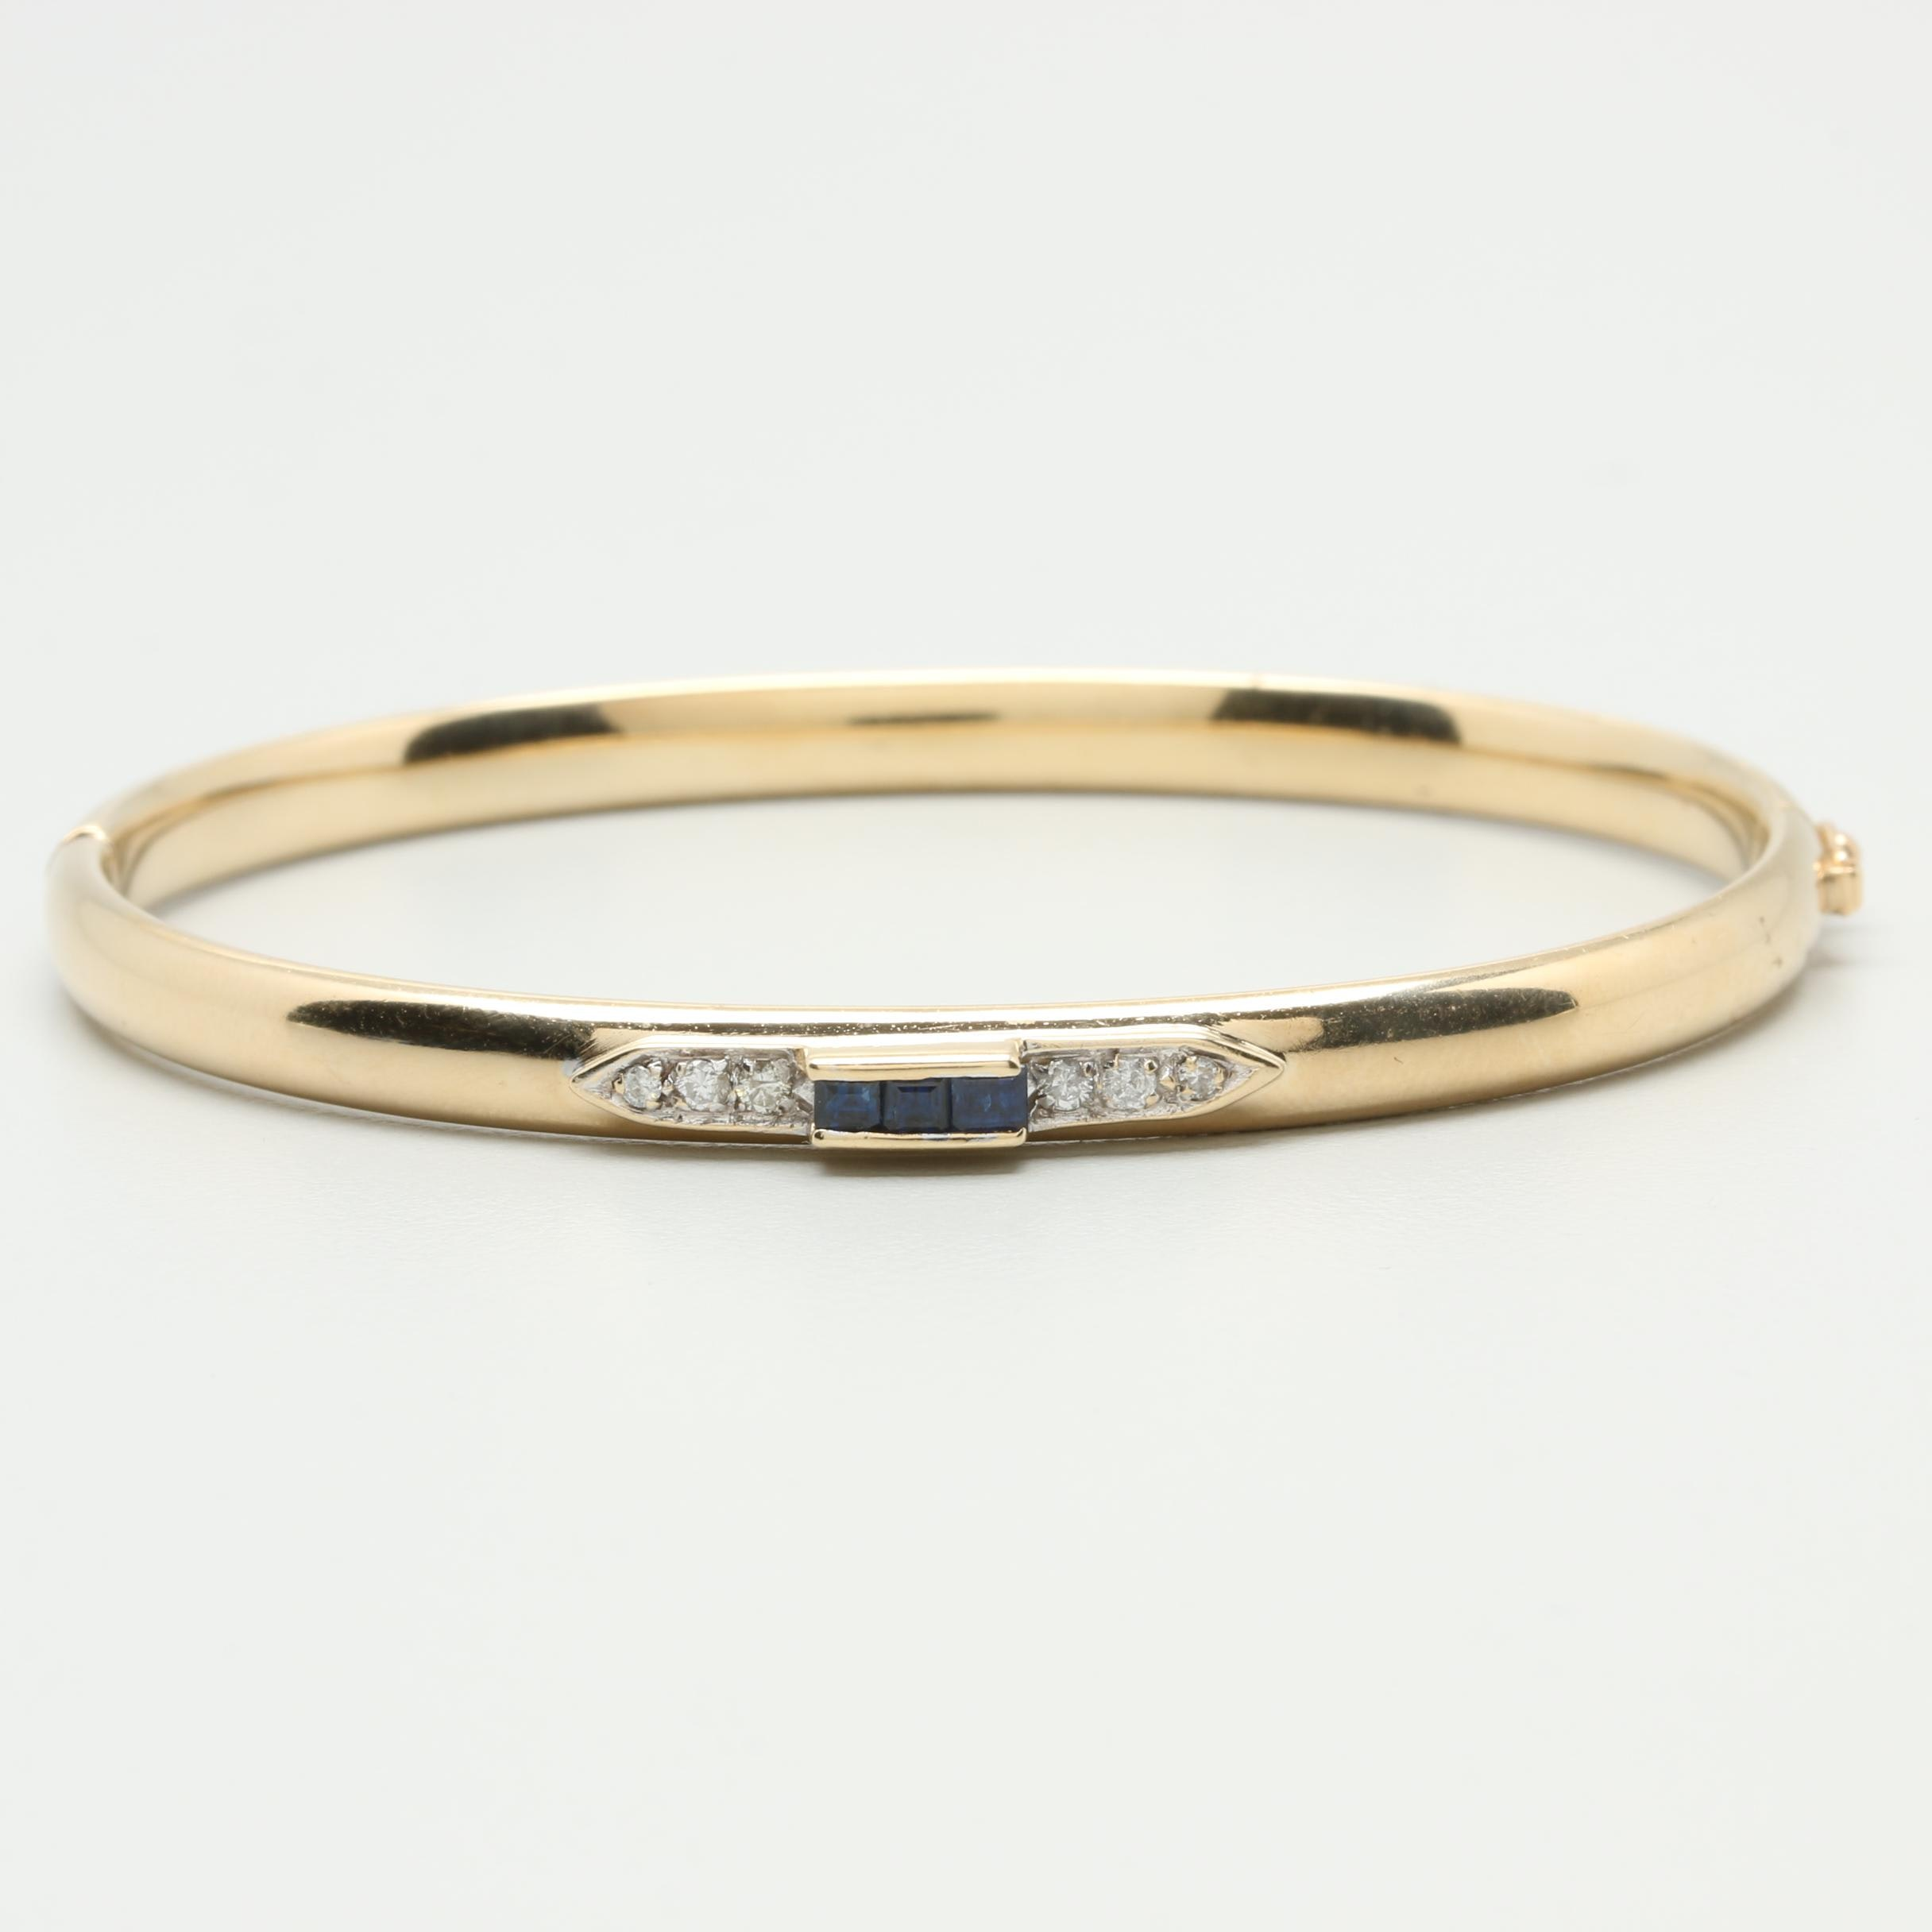 14K Yellow Gold Diamond and Blue Sapphire Bangle Bracelet